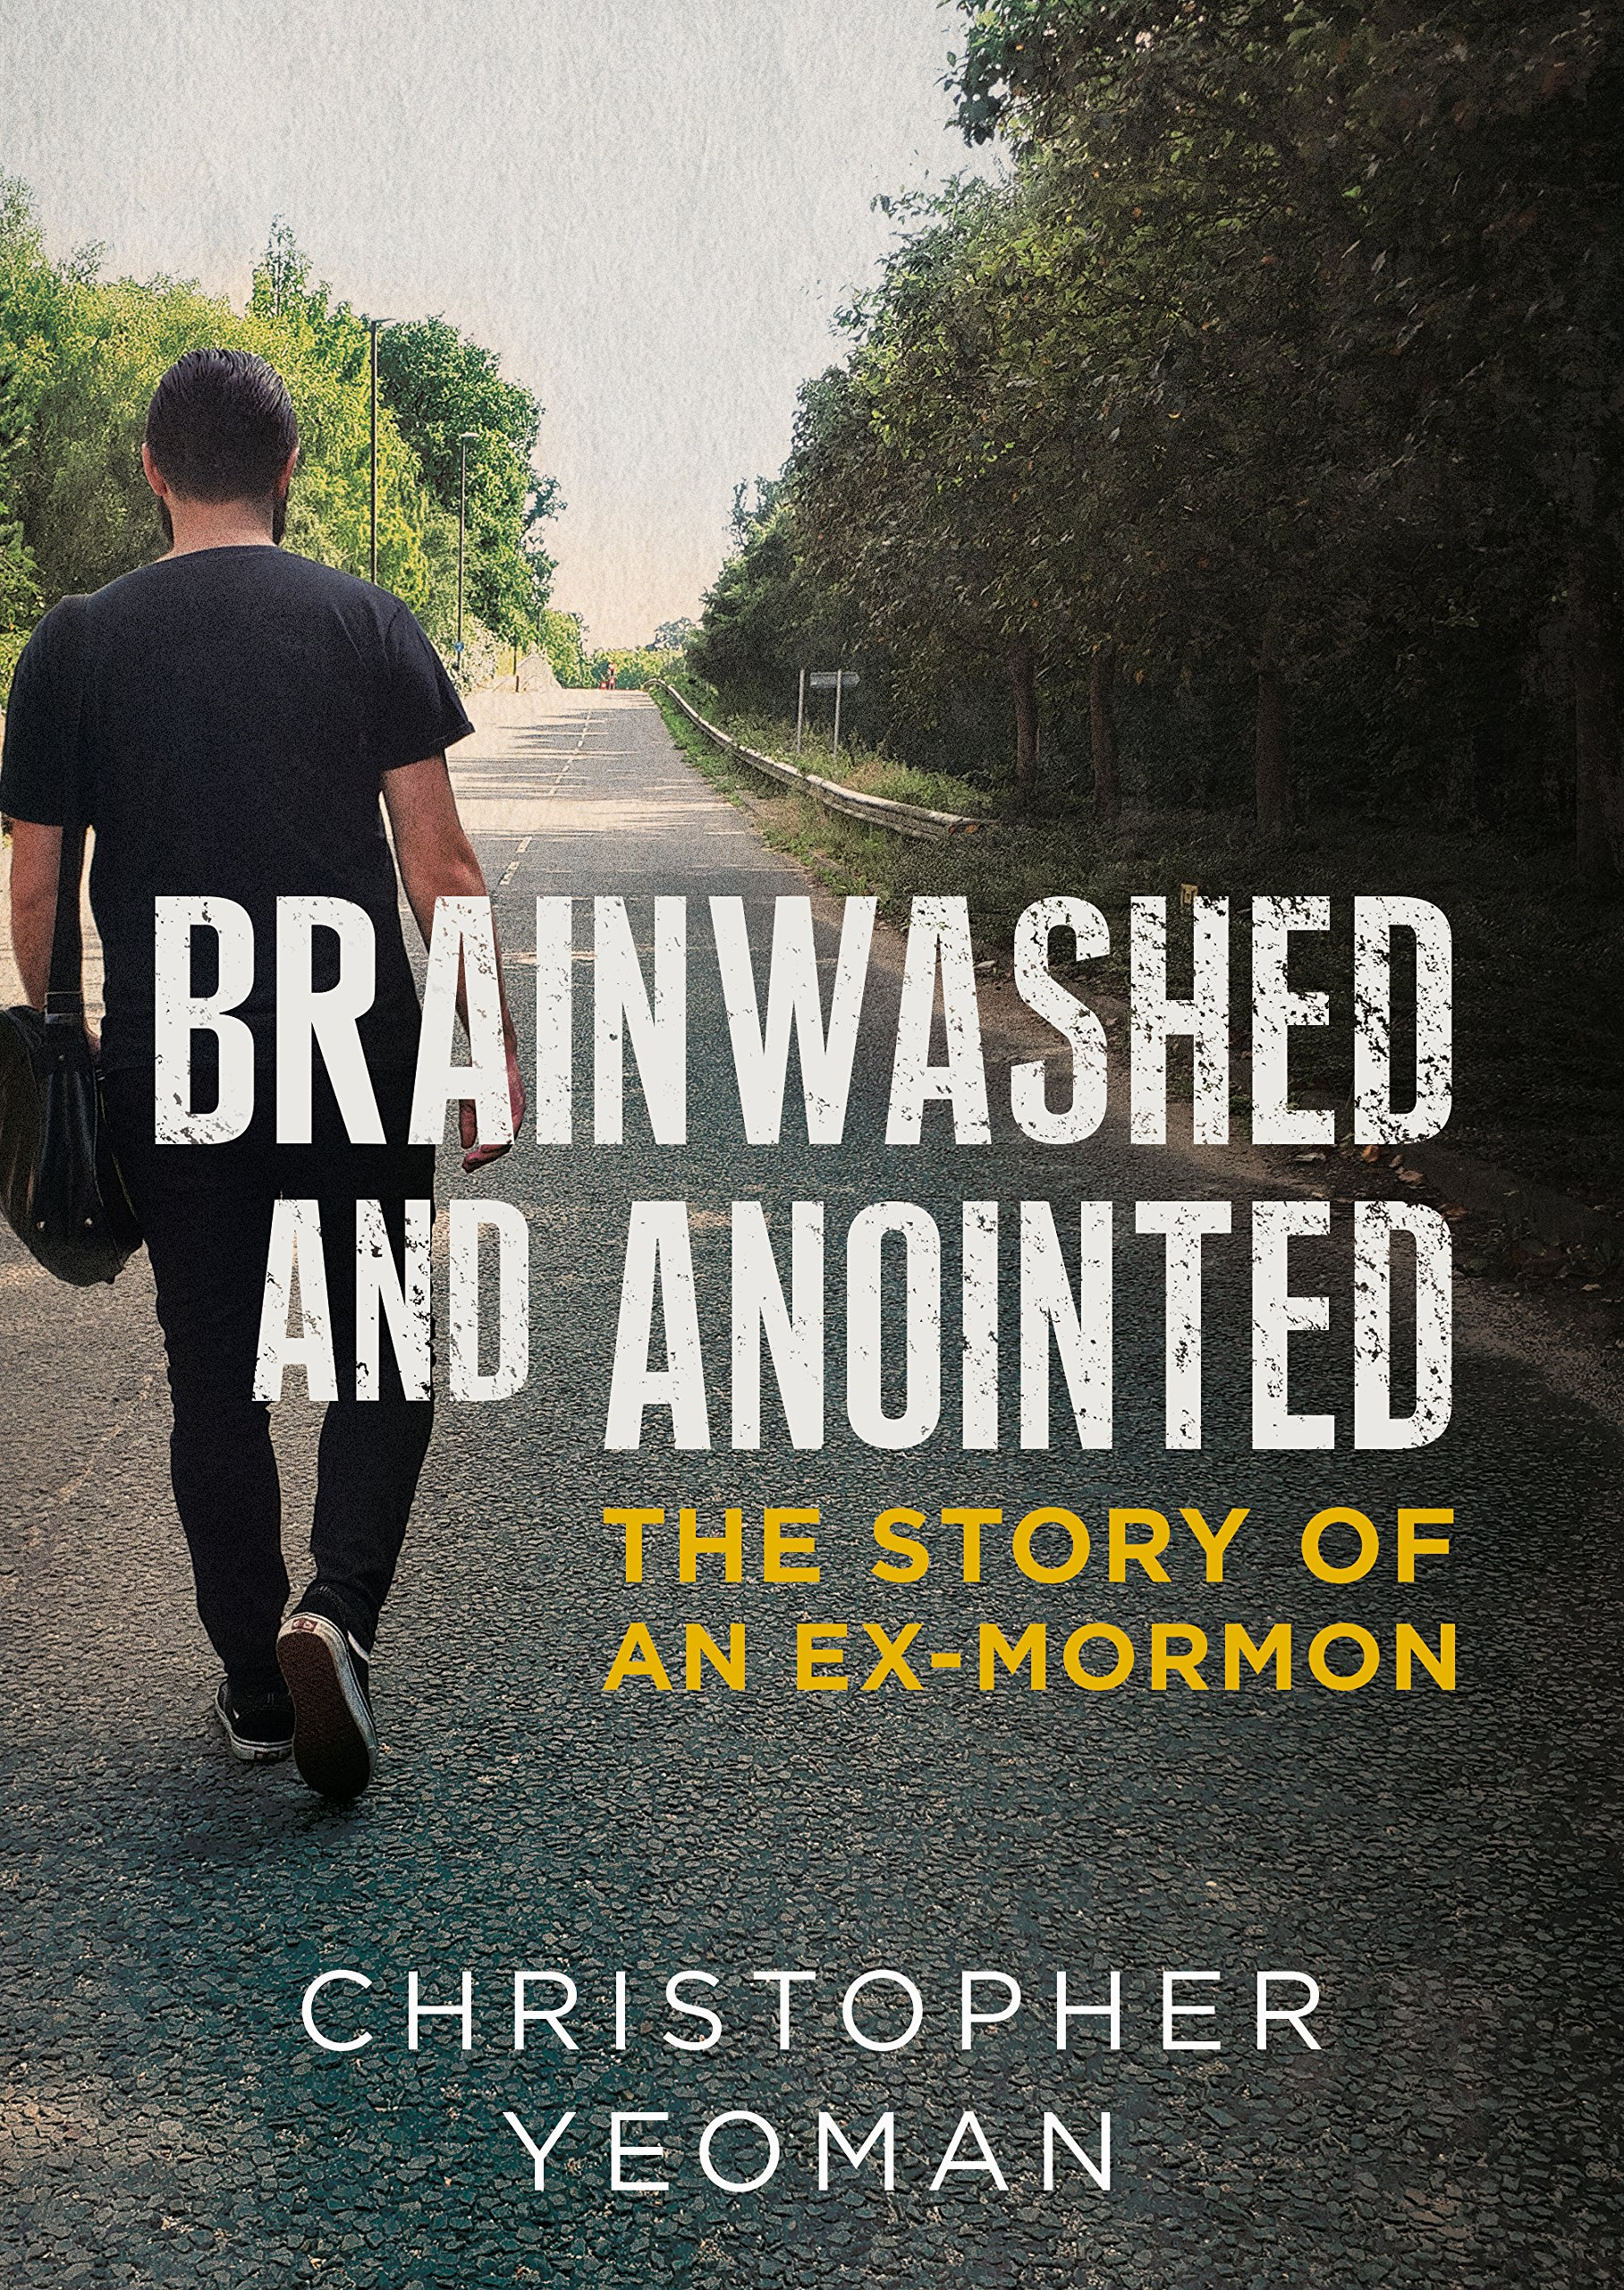 Brainwashed and Anointed: The Story of an Ex-Mormon: Chris